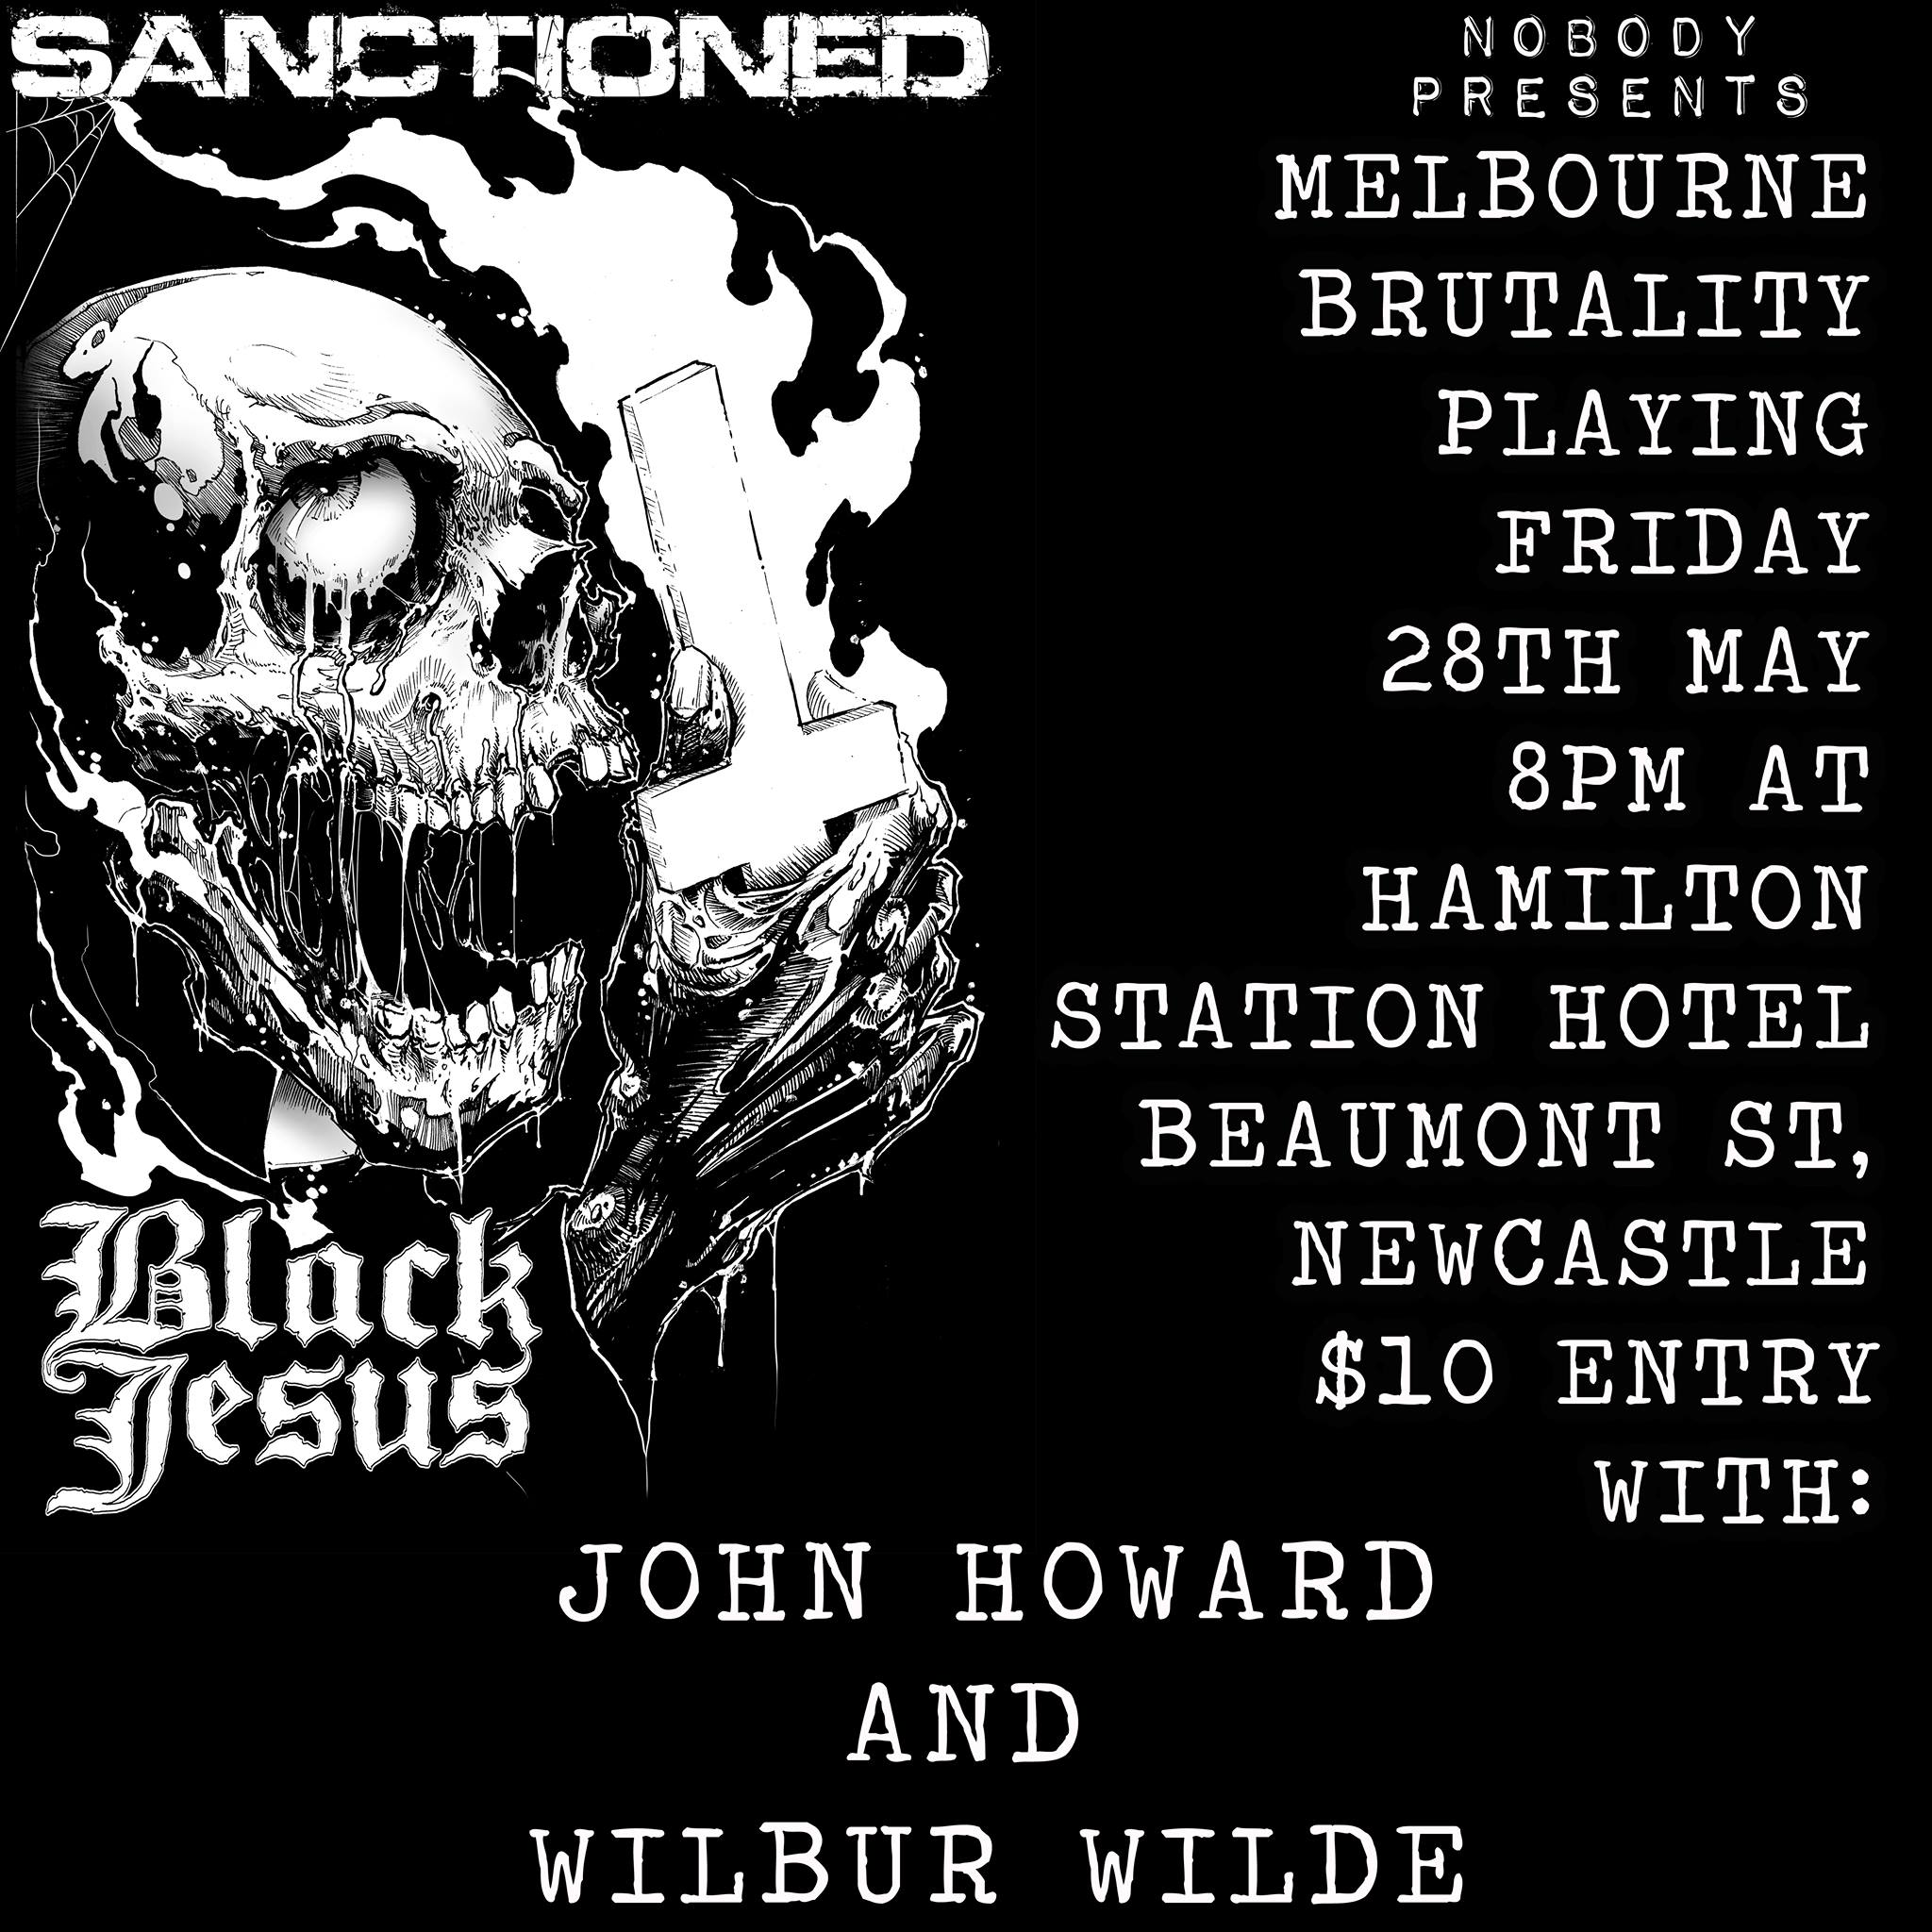 Black Jesus & Sanctioned at The Hamilton Station Hotel